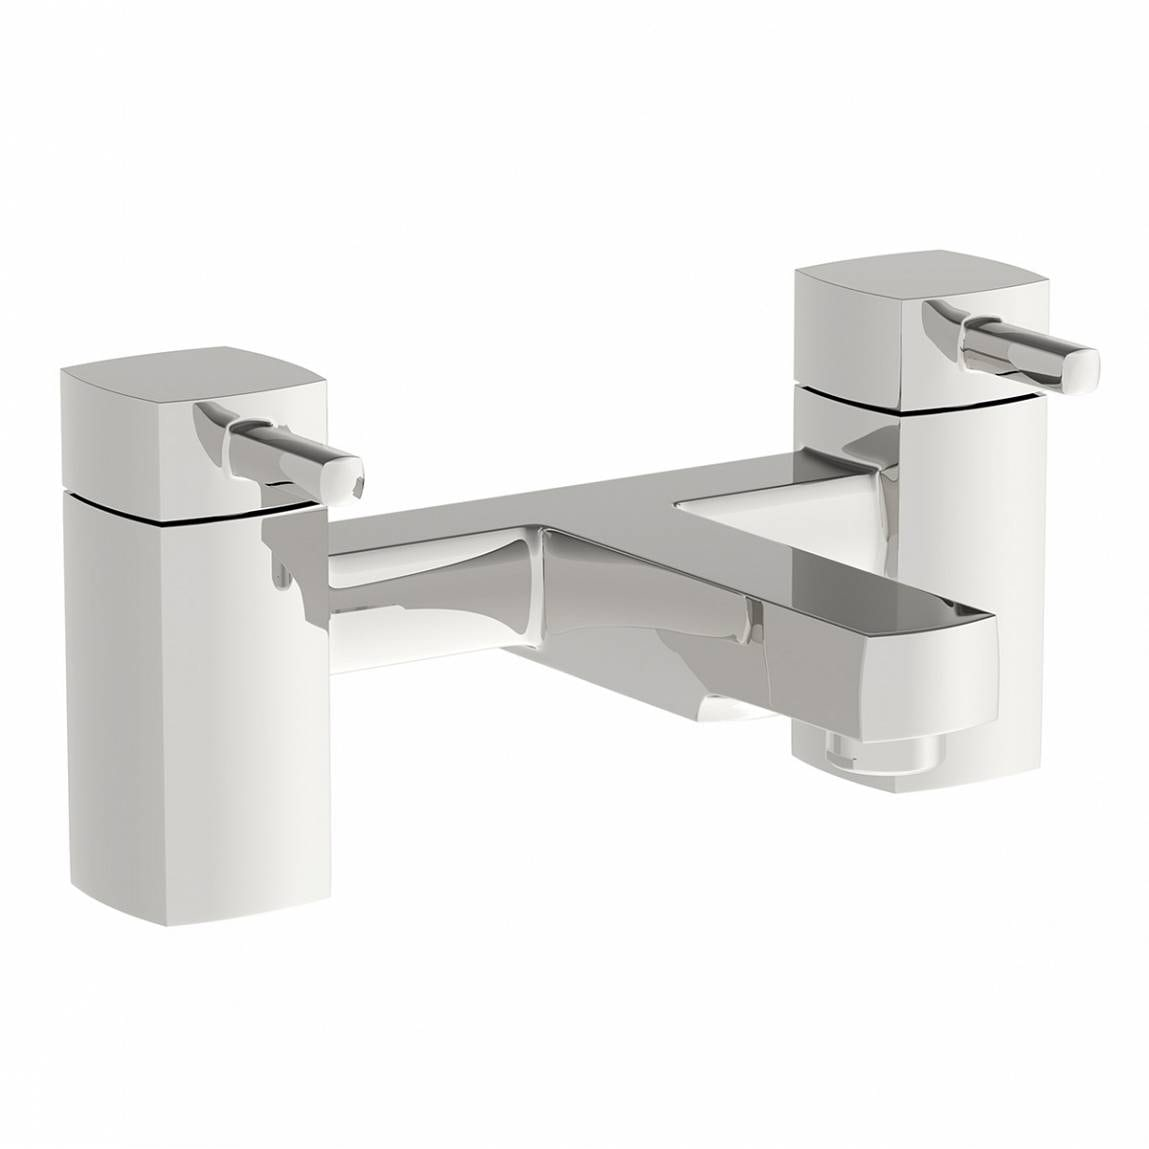 Orchard Derwent bath mixer tap